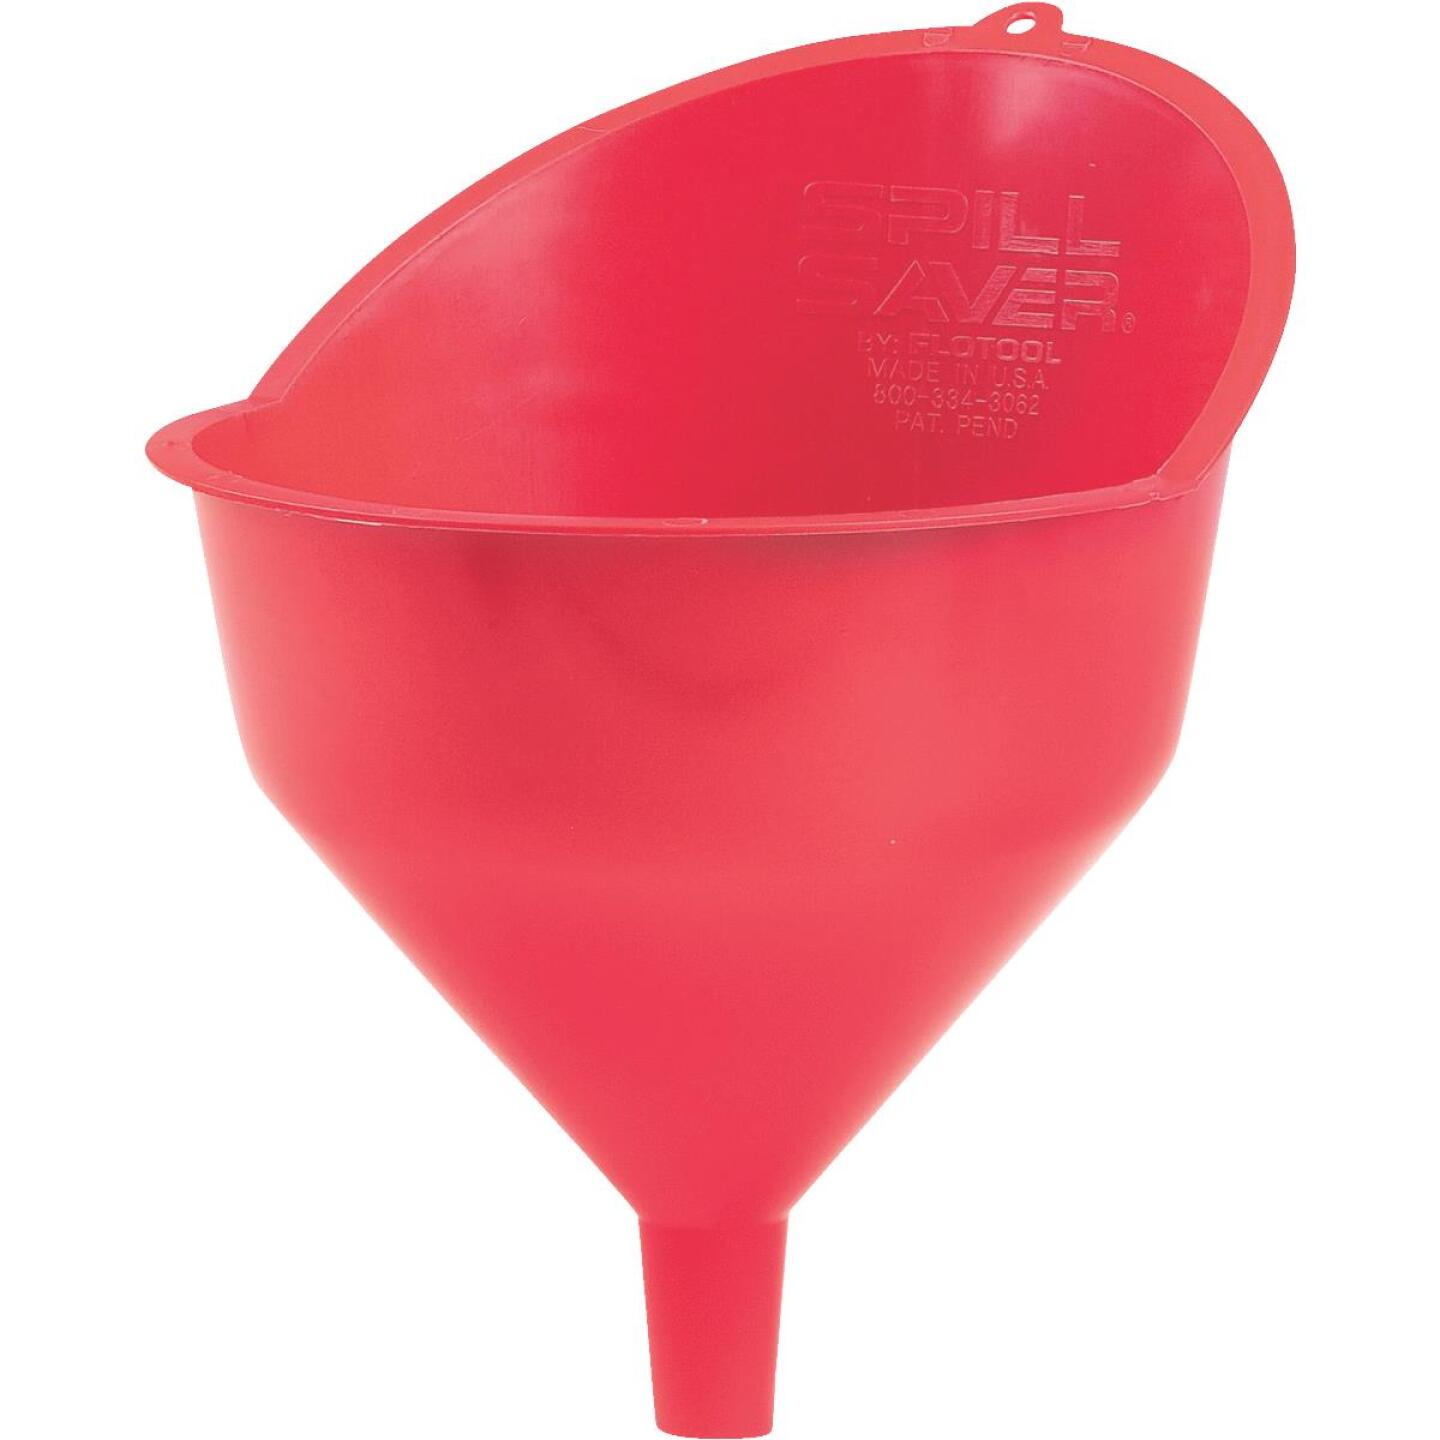 Hopkins Plastic All-Purpose Giant Funnel Image 1